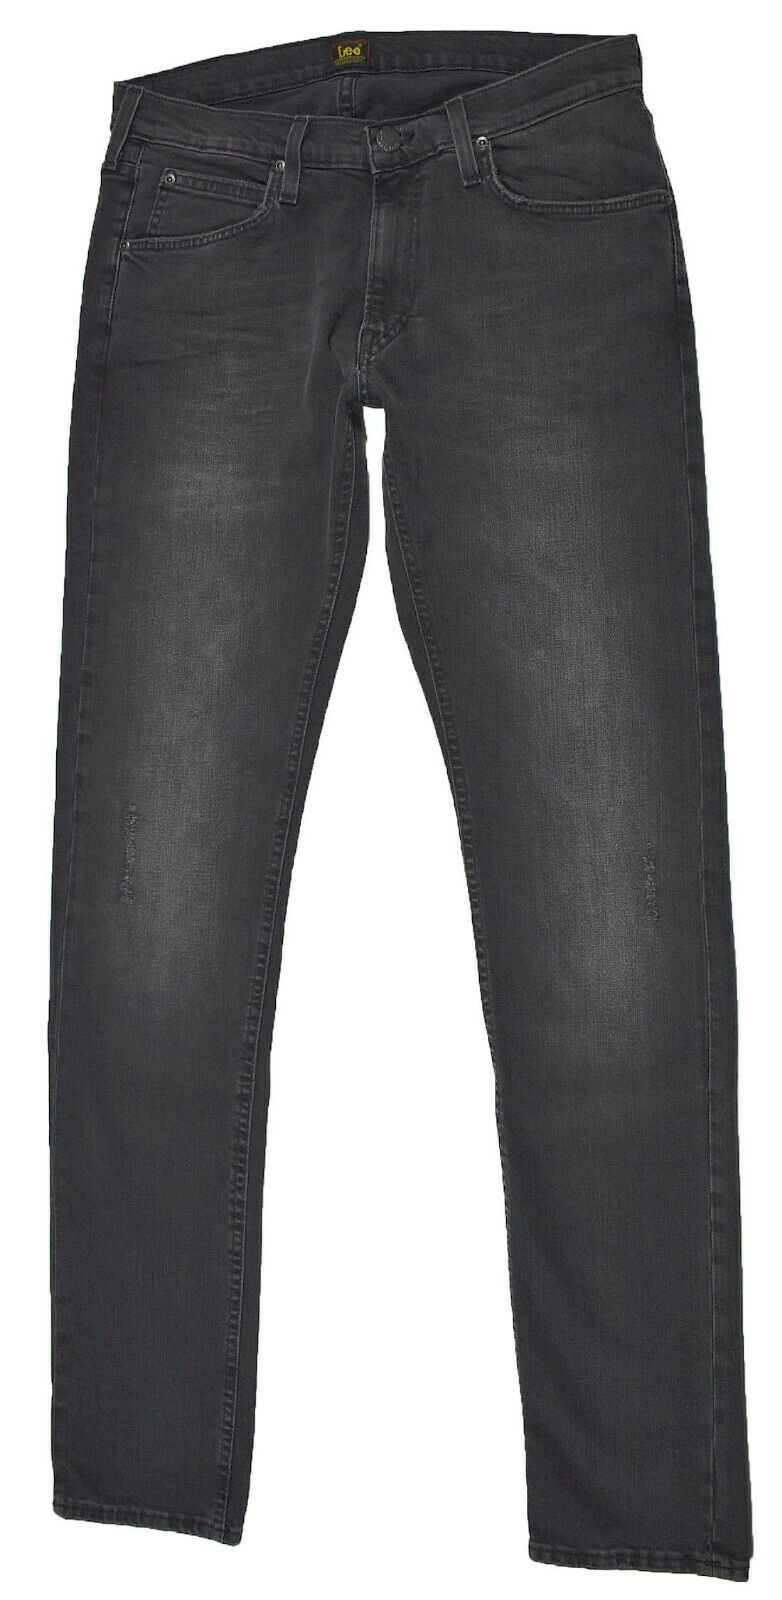 Lee Luke Slim Taperot L719JBQF Herren Jeans Hose Lee Jeans Hosen sale 4-1126